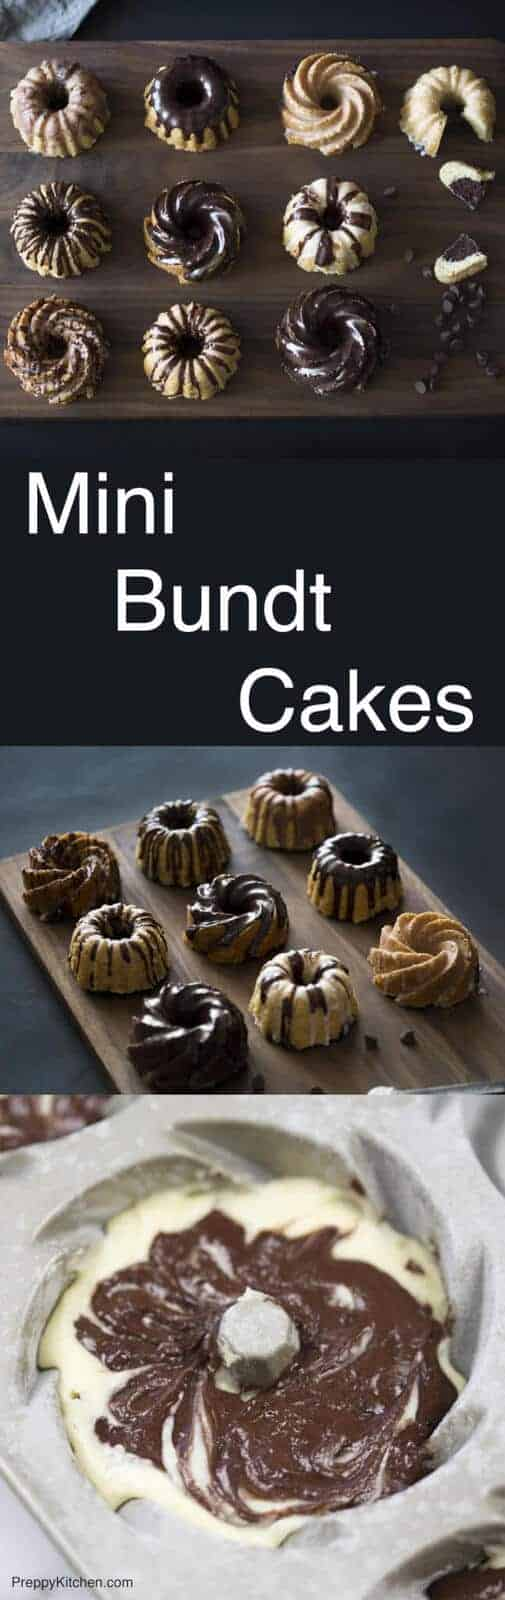 Marbleized chocolate and vanilla mini-bundt cakes decorated with white and dark chocolate ganache. Click over for full recipe and video.